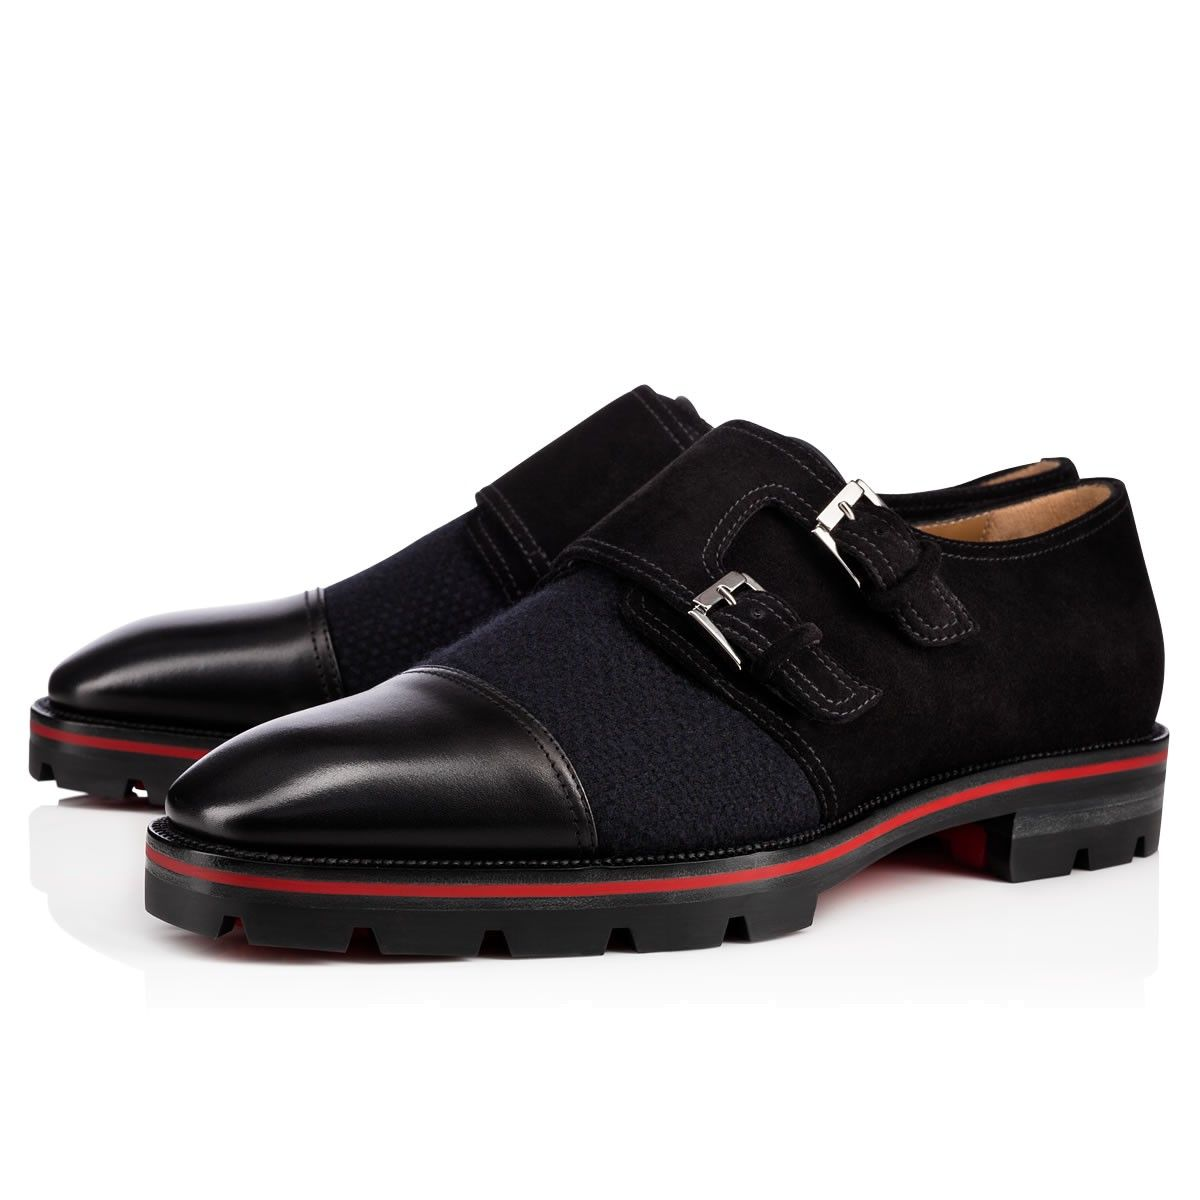 6d4a7b40441 CHRISTIAN LOUBOUTIN Mortimer X Sole Flat.  christianlouboutin  shoes ...